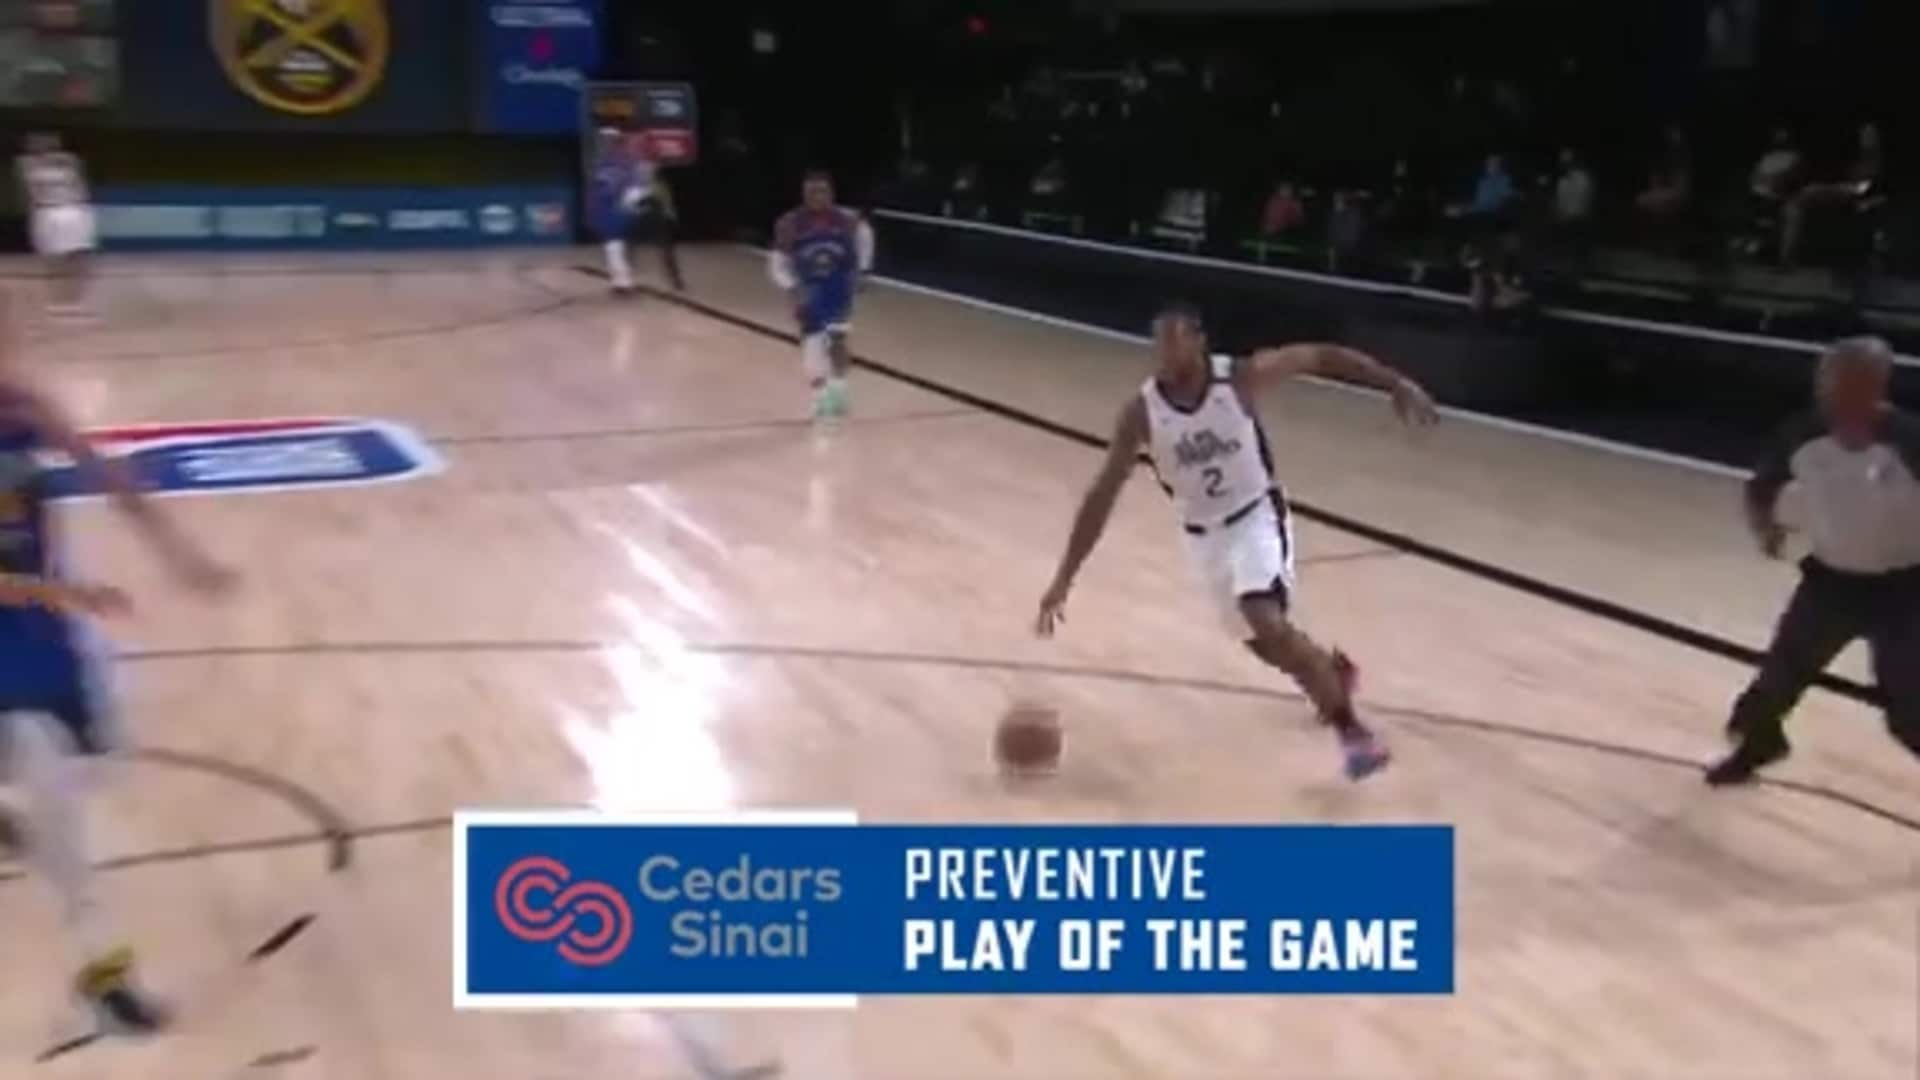 Cedars-Sinai Preventive Play of the Game | Clippers vs. Nuggets (08.12.20)